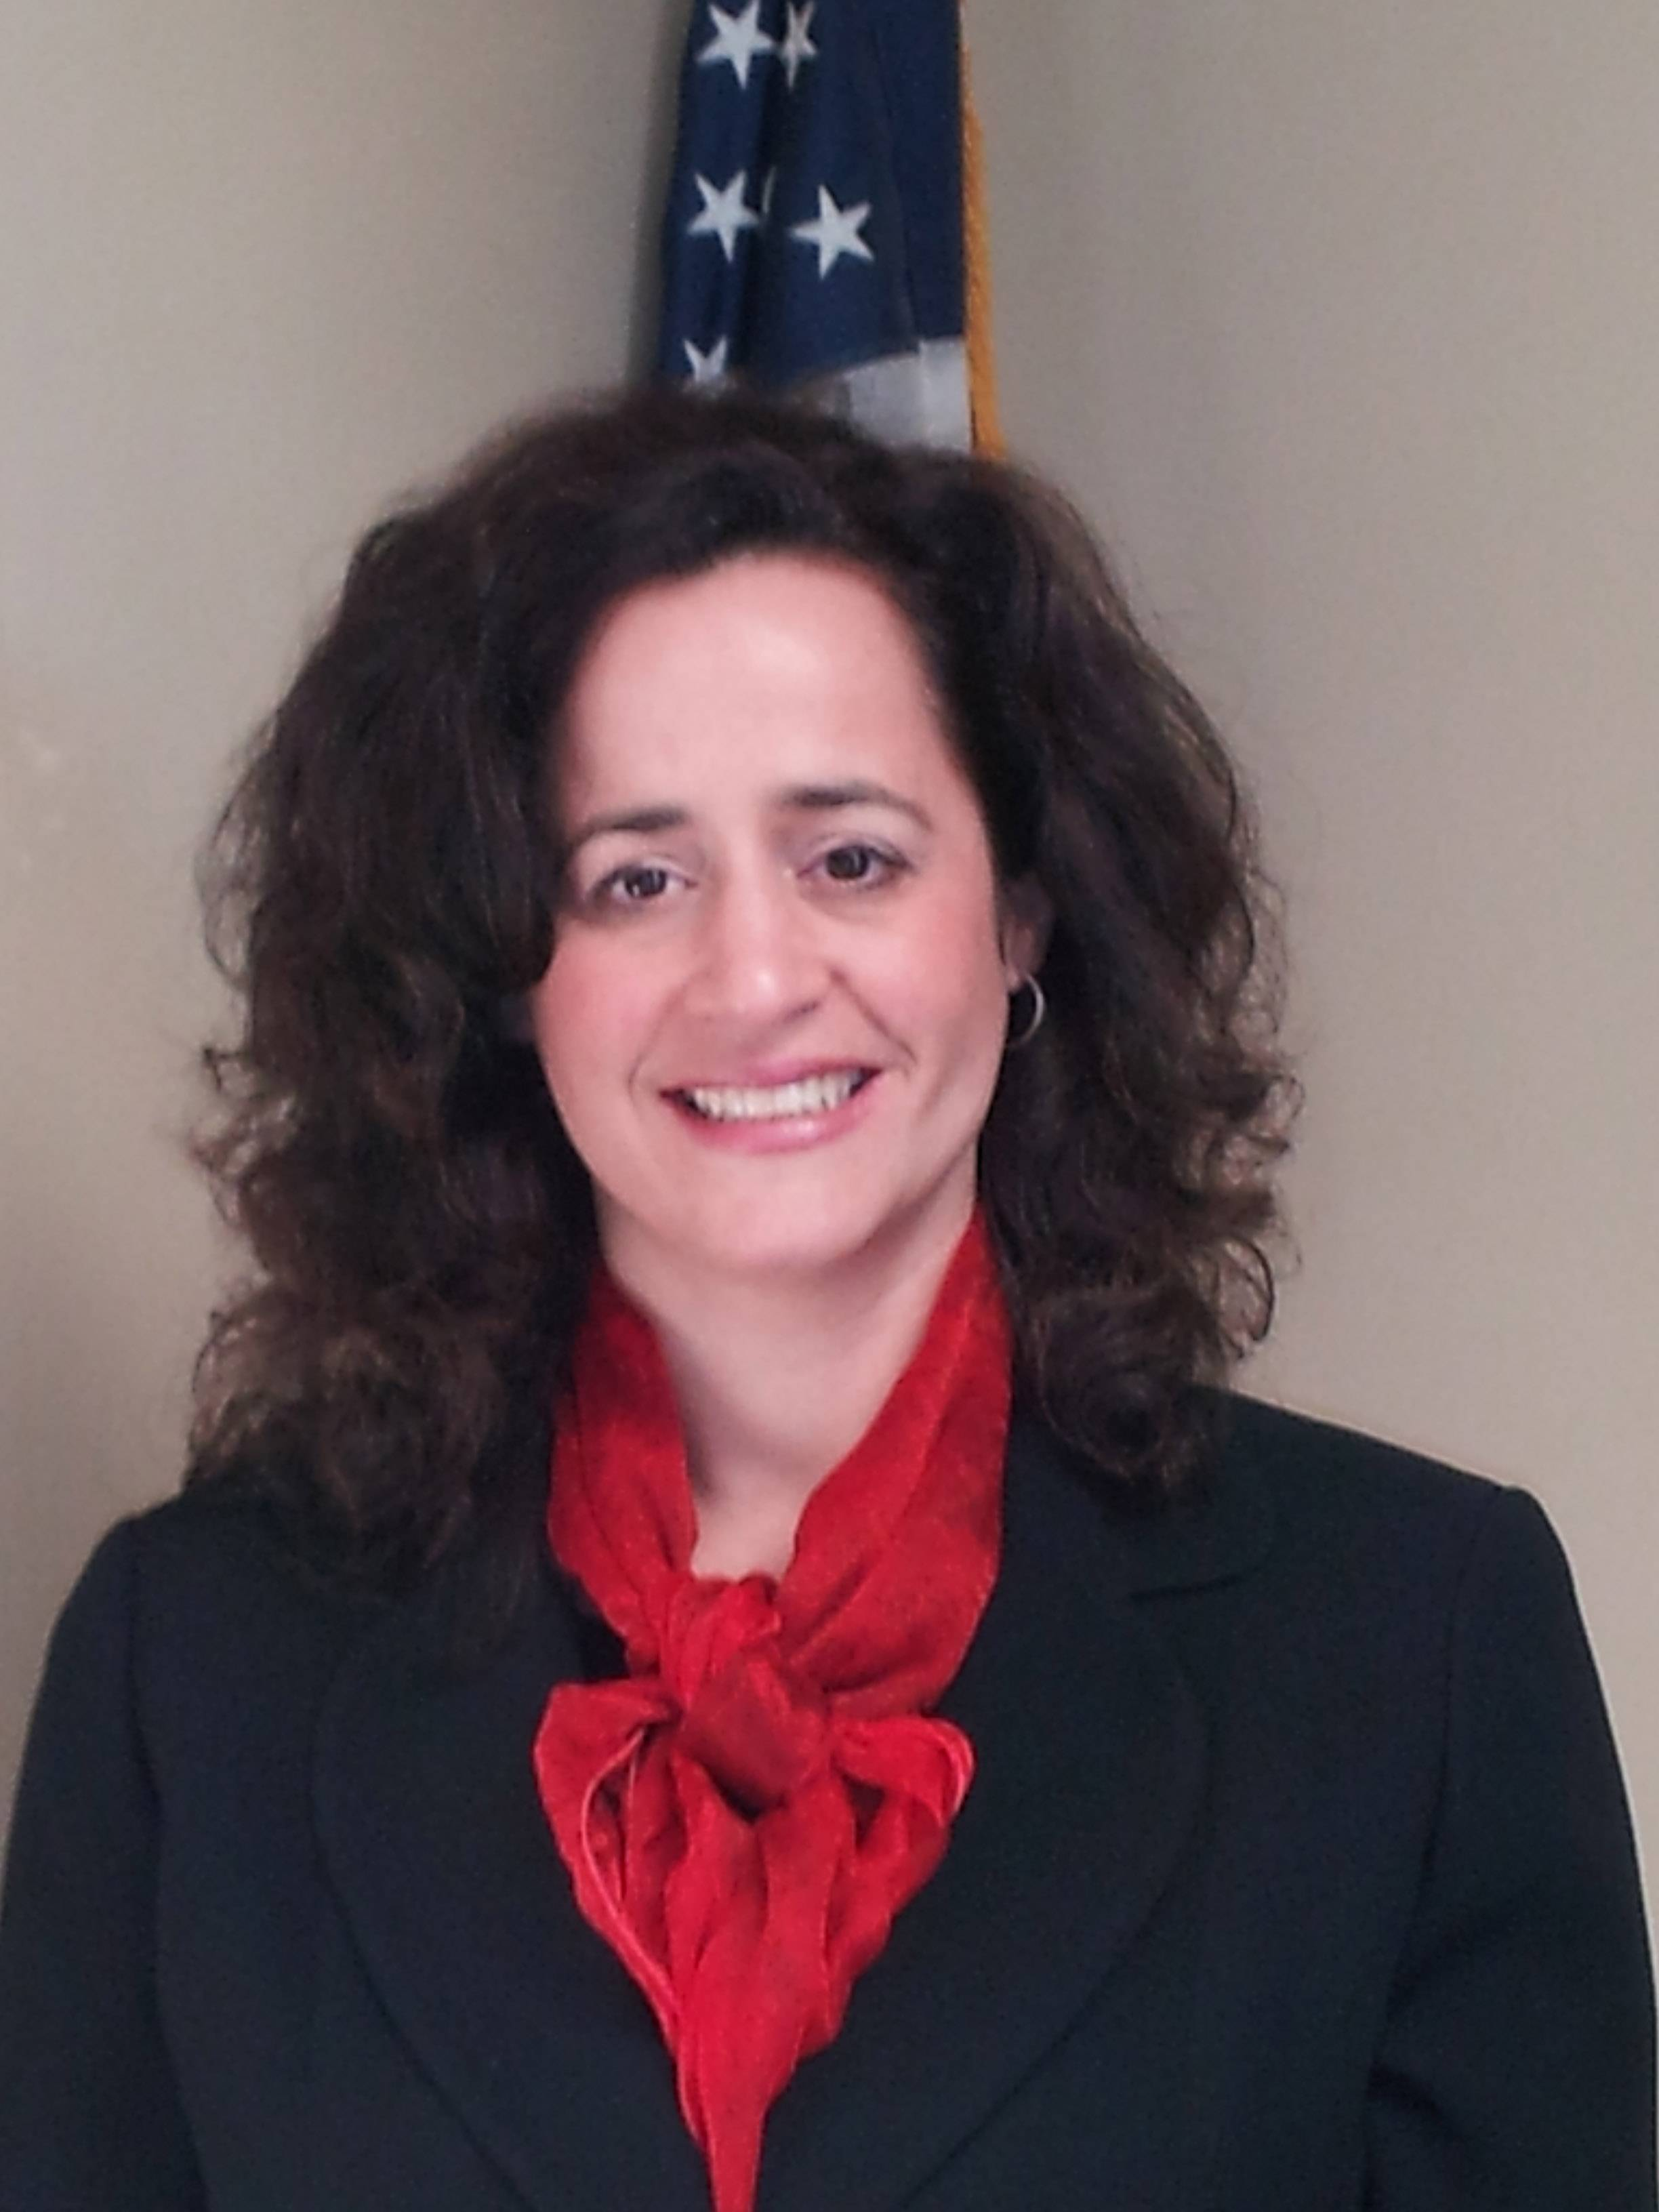 Angelina Filippo, running for Bartlett Village Board (4-year Terms)